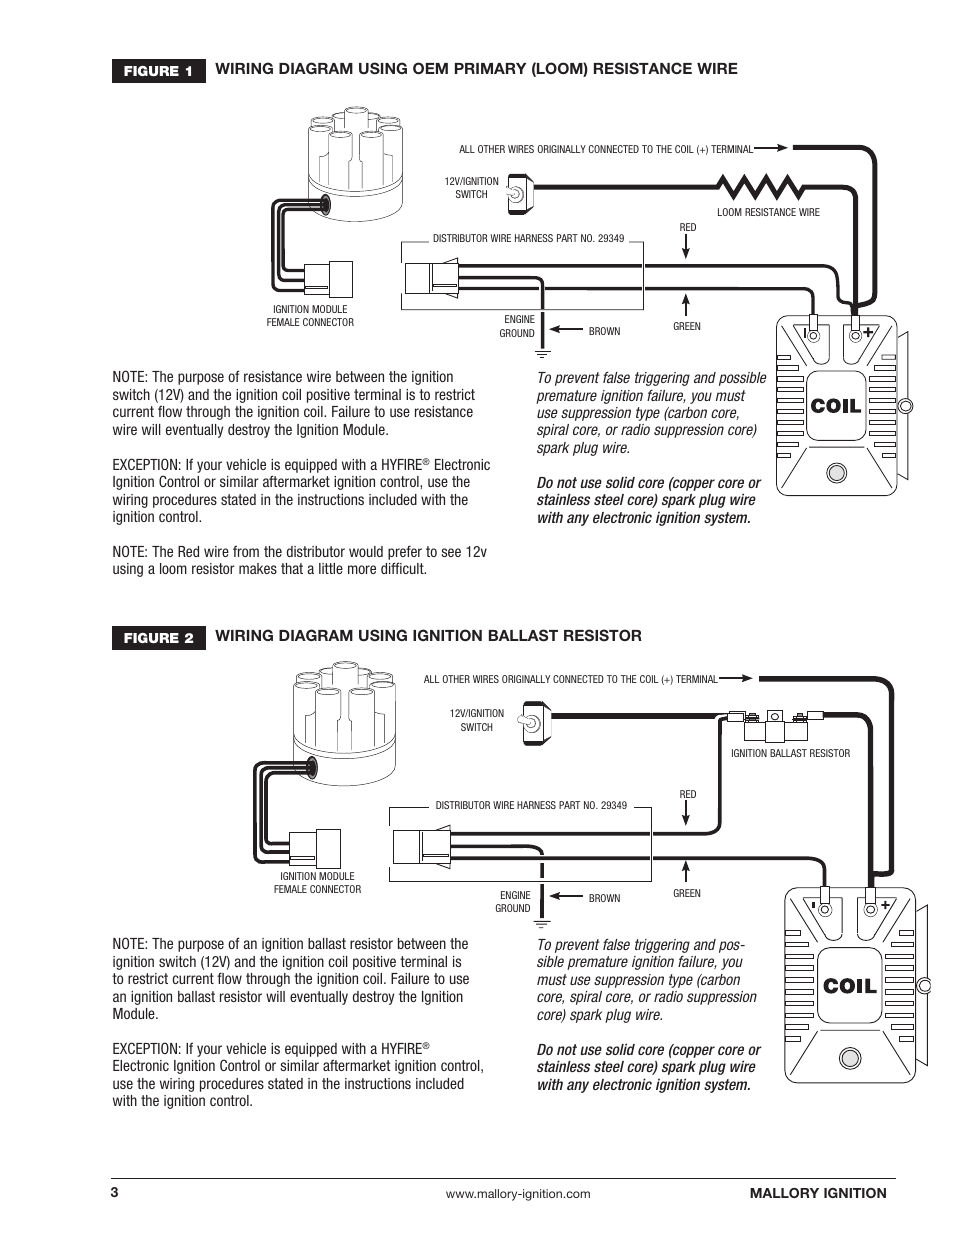 mallory ignition mallory magnetic breakerless distributor 609 page3 mallory ignition mallory magnetic breakerless distributor 609 user mallory 6al wiring diagram at mifinder.co